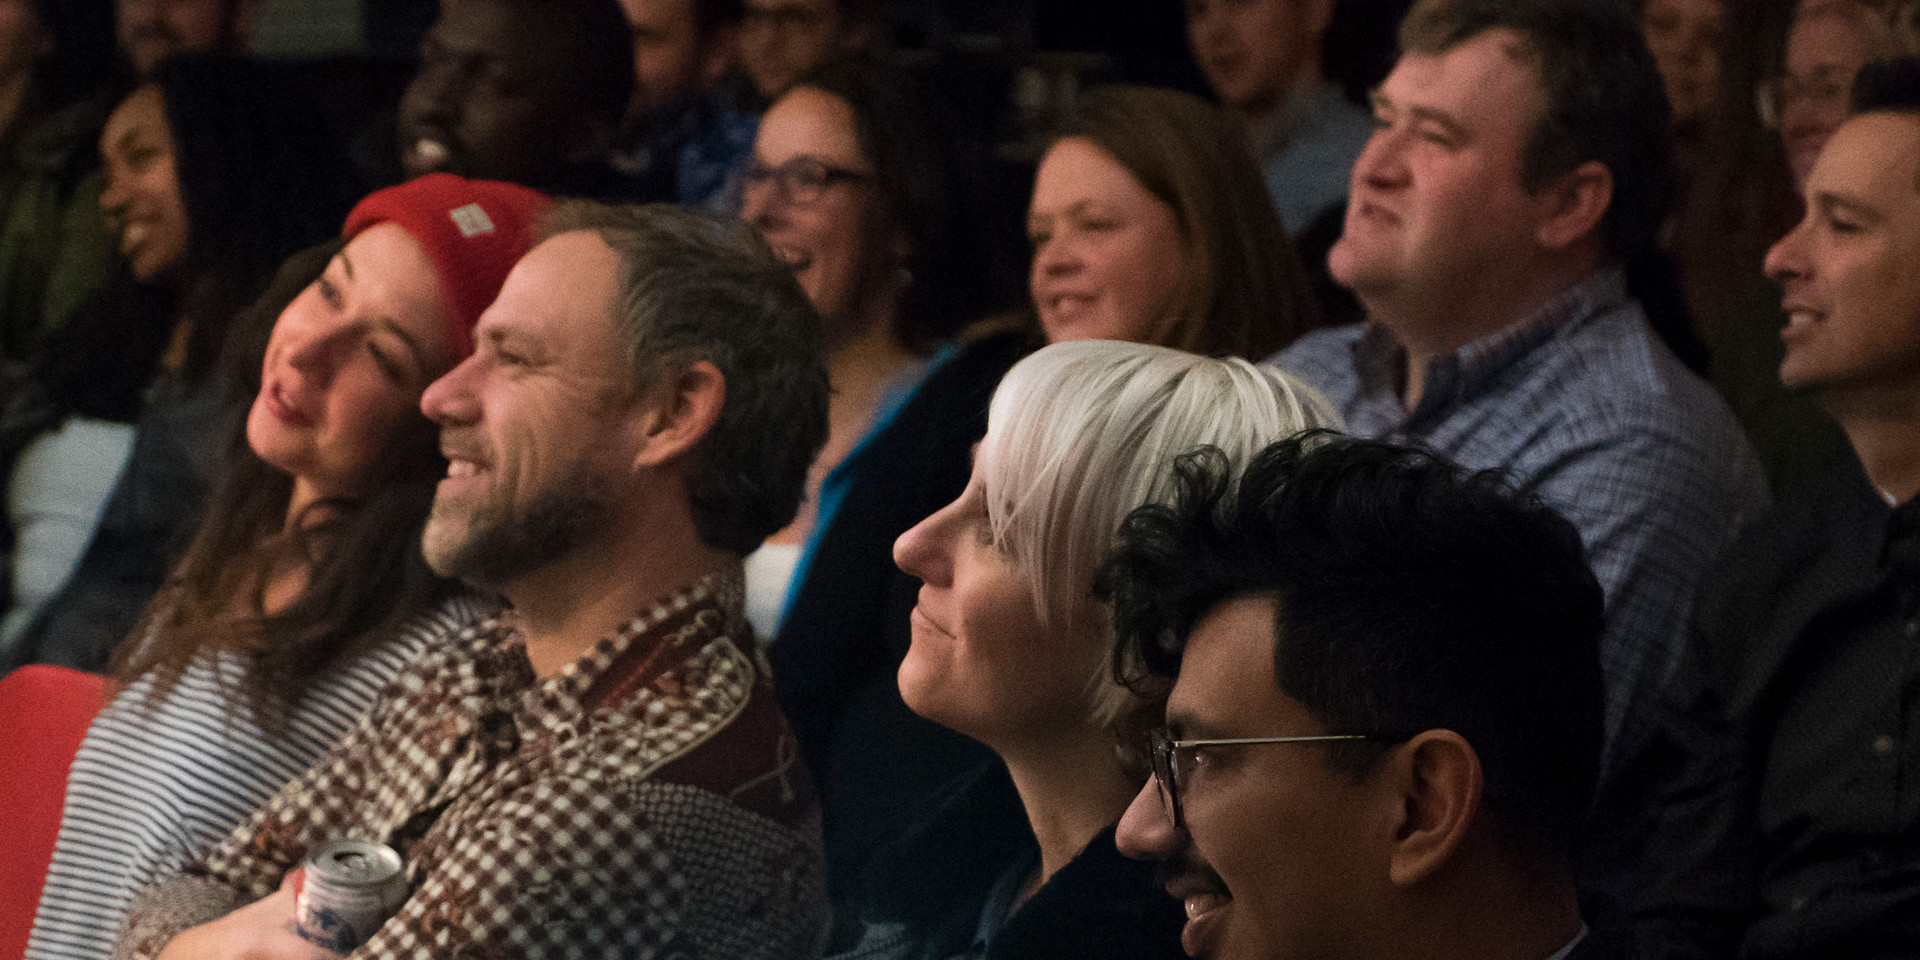 Audience at Front Porch Improv show, January 2018